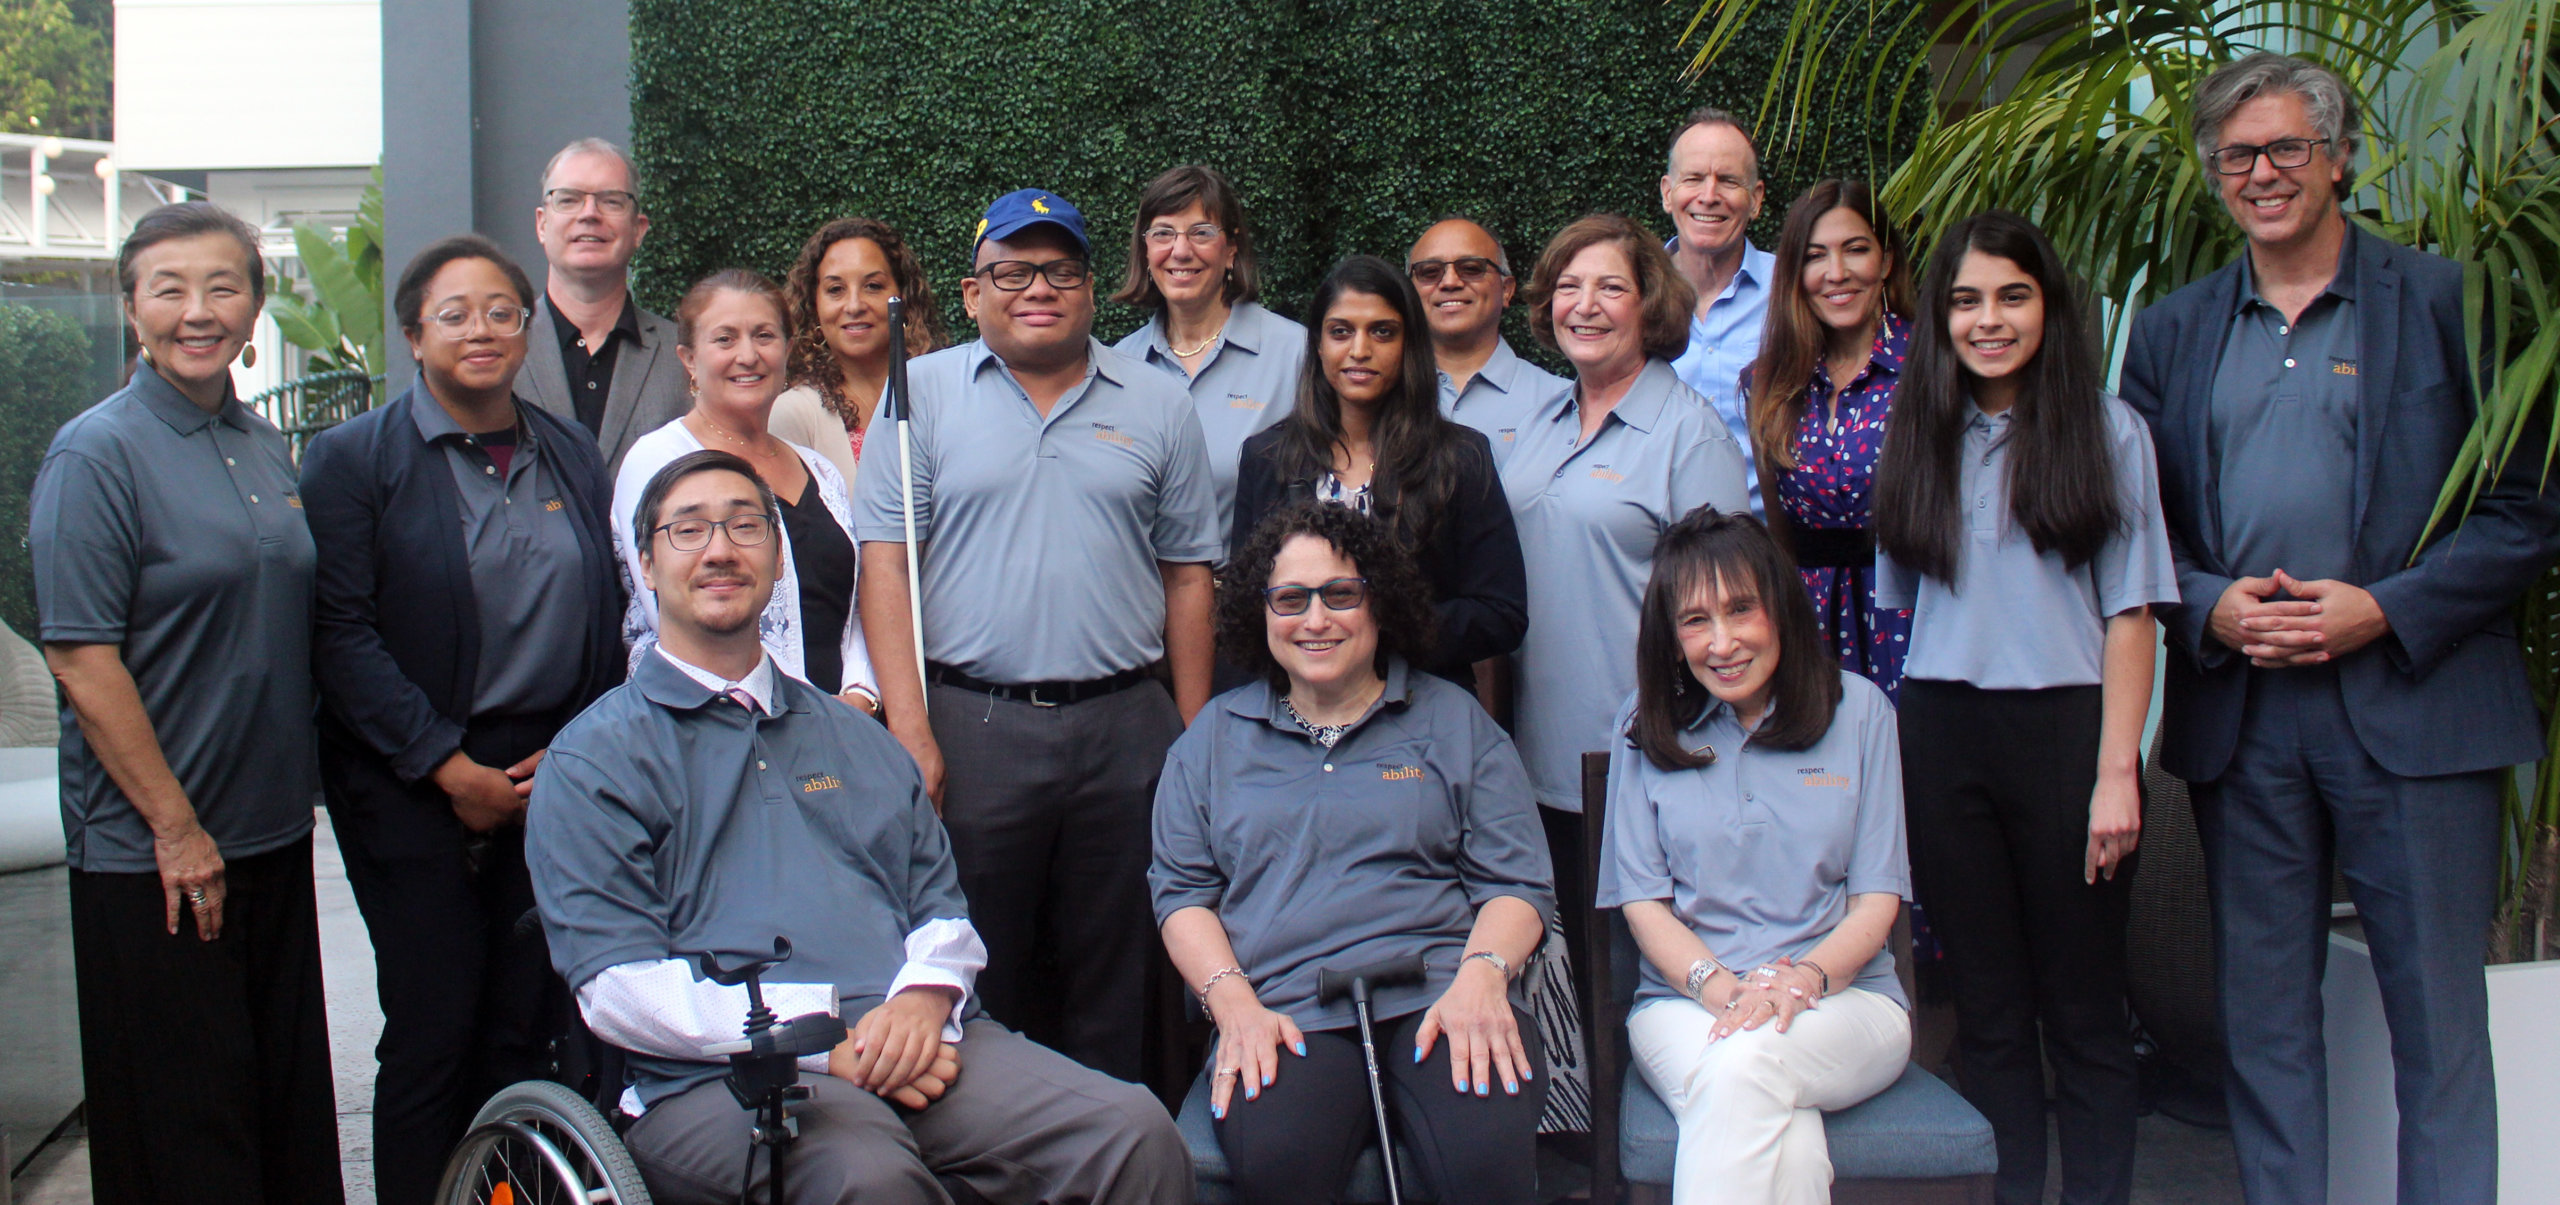 RespectAbility Board members smiling together, many wearing polo shirts with the RespectAbility logo on it